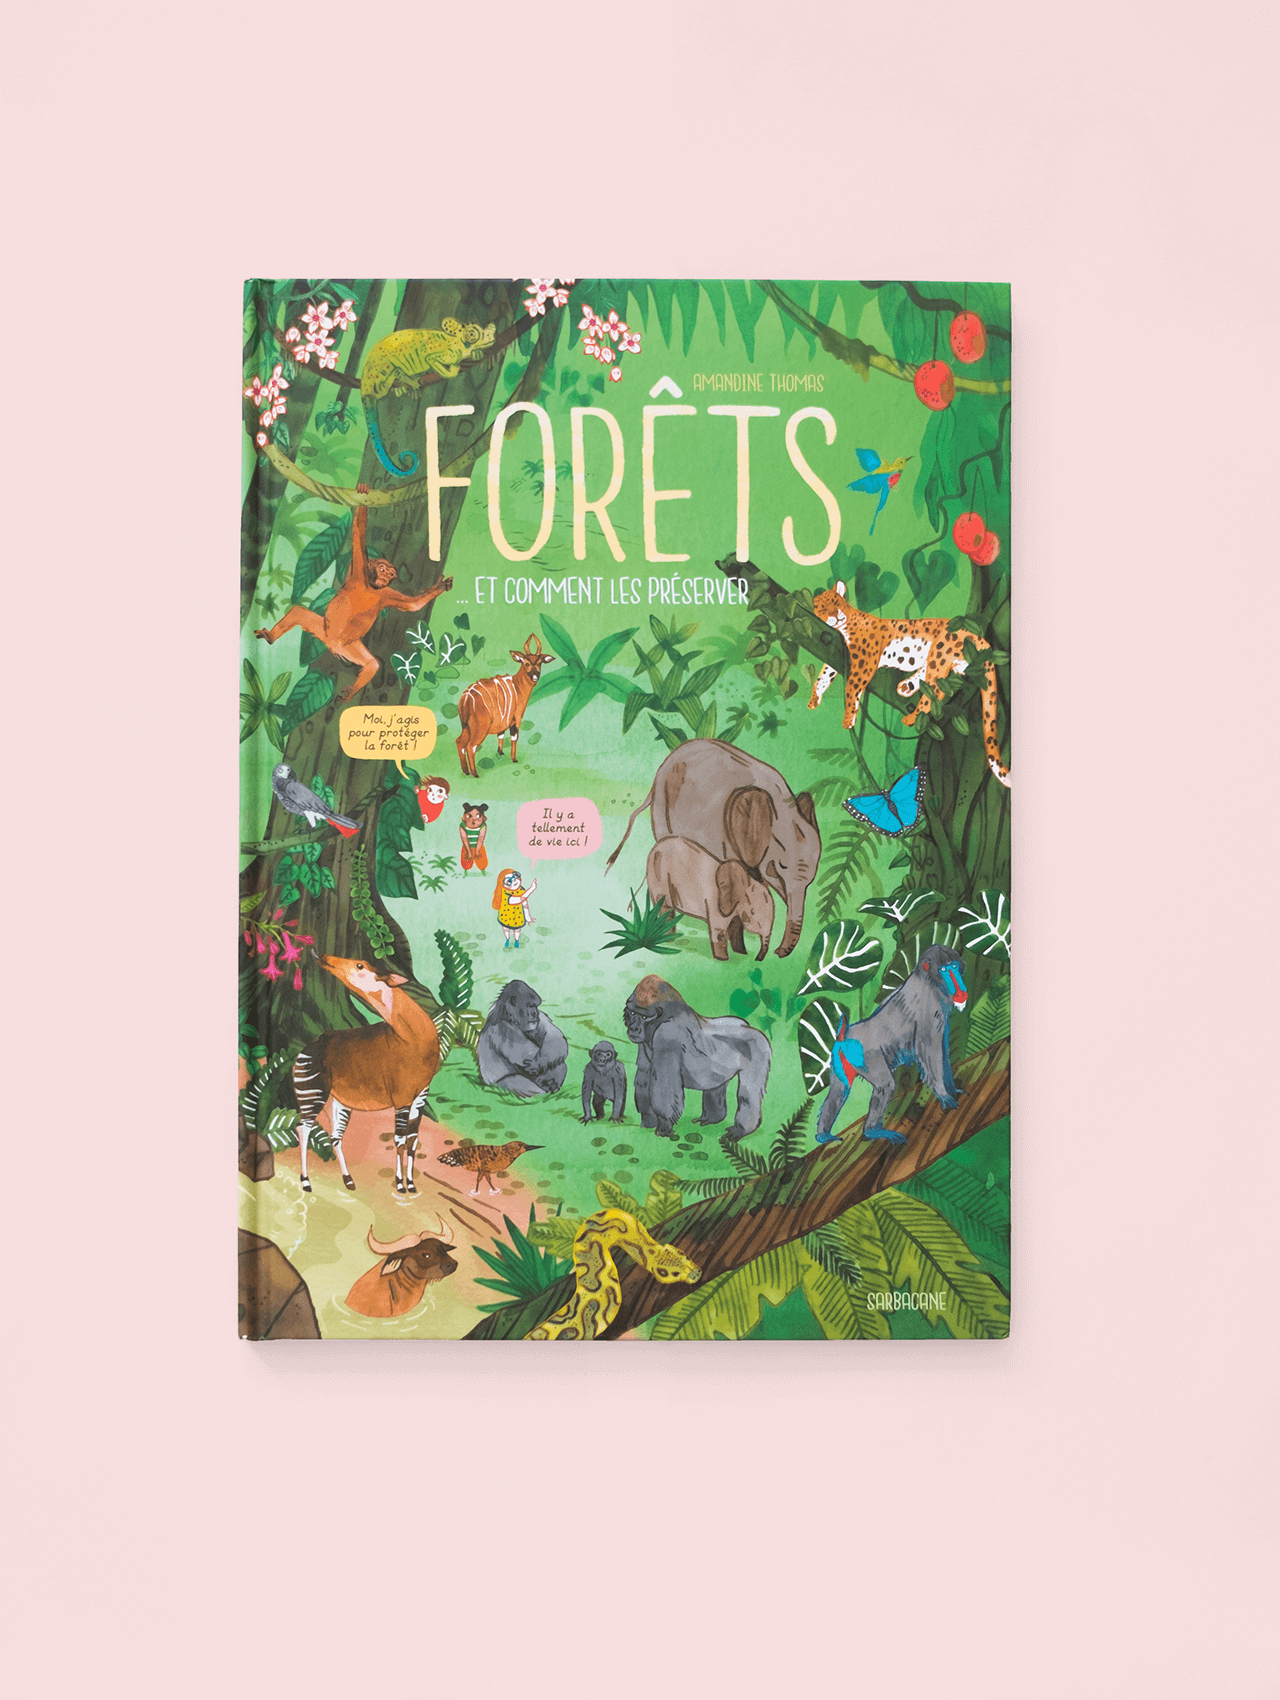 Cover of a kids' book showing an illustration of a rainforest